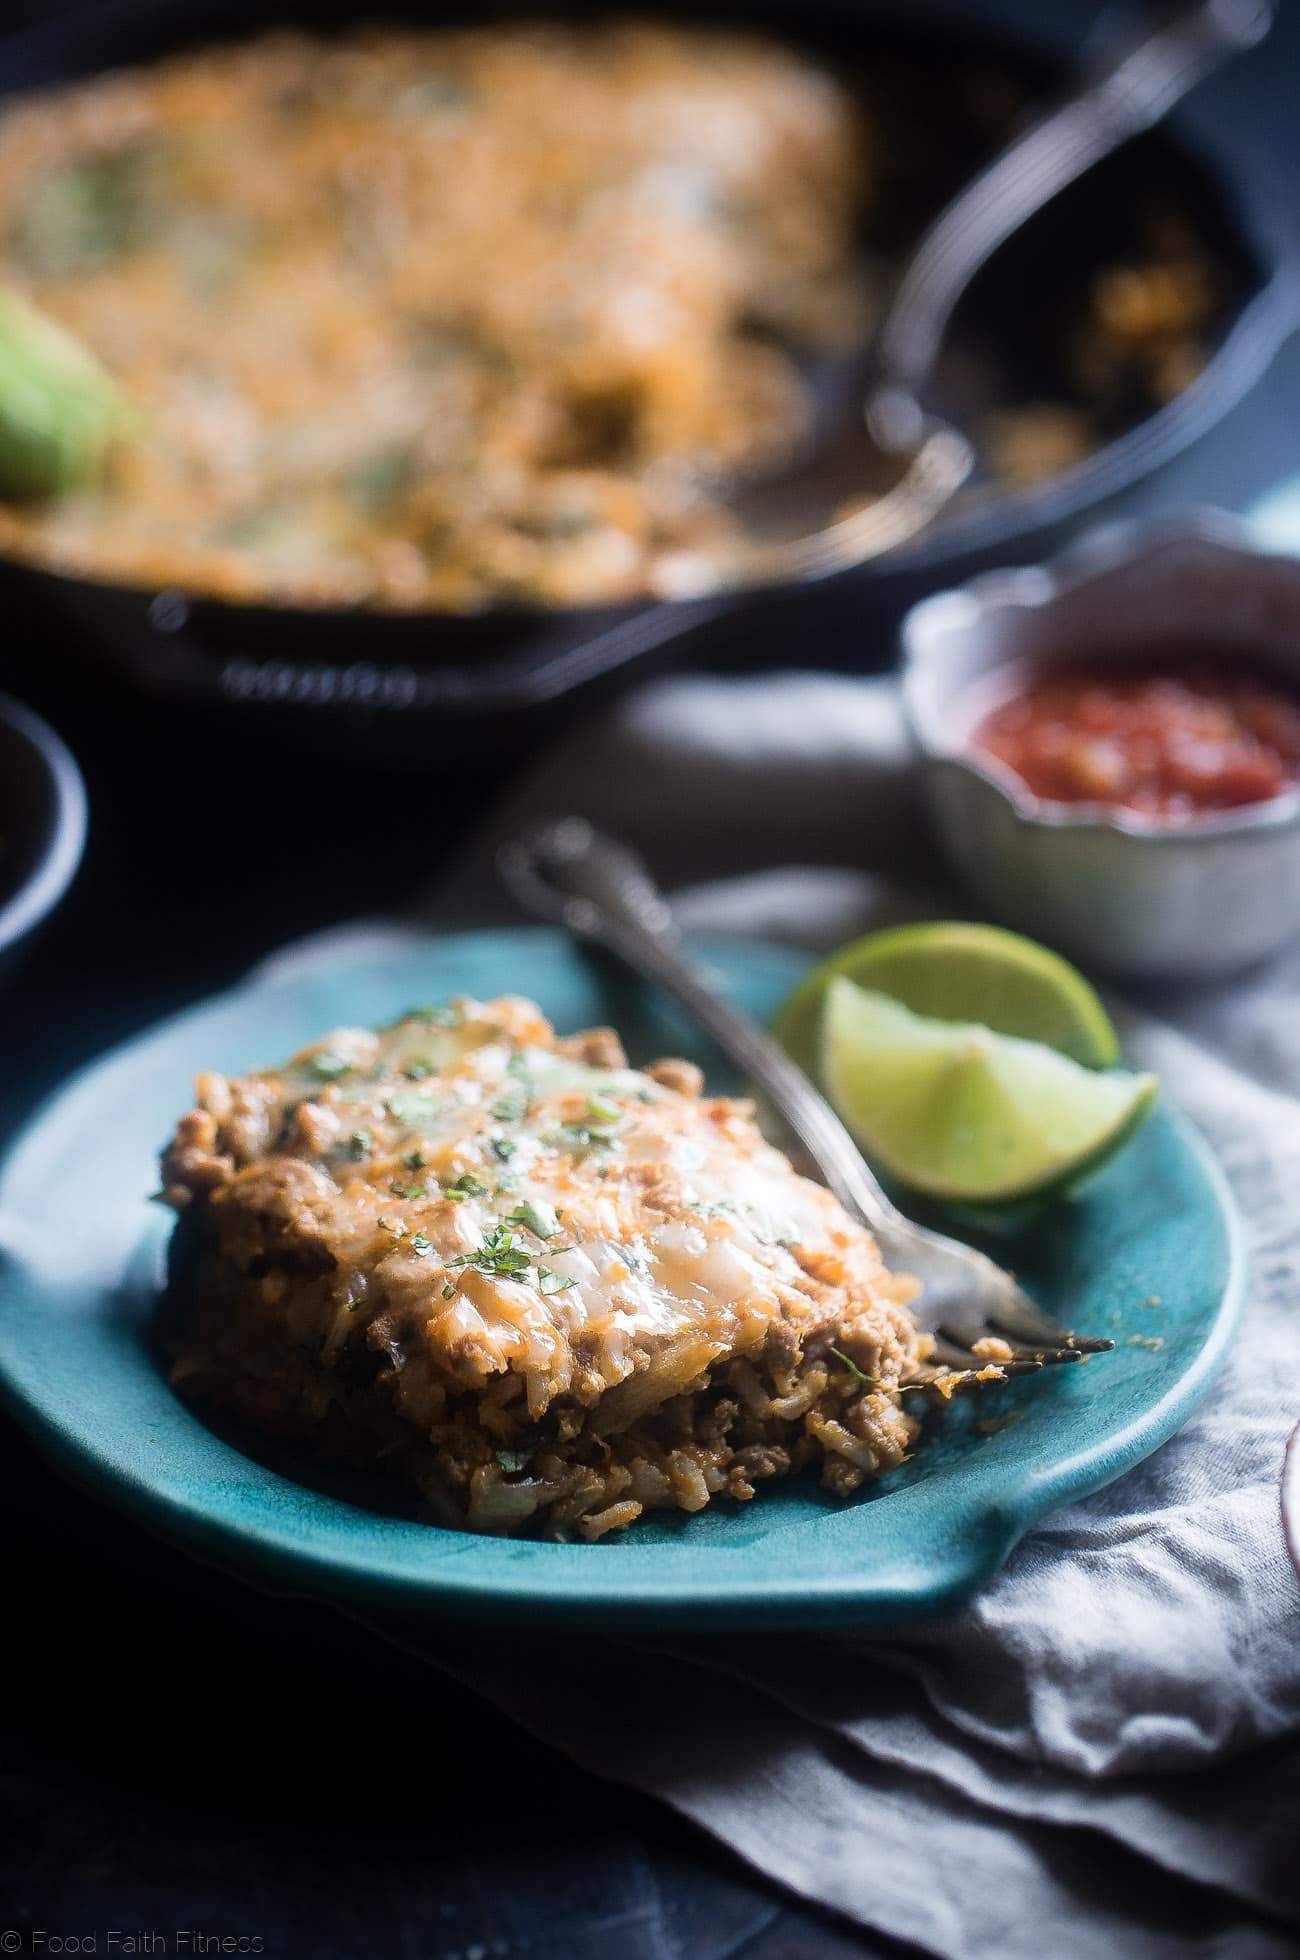 One Pot Mexican Chicken Rice Casserole - This chicken Mexican rice casserole uses sweet potato for extra creaminess! It's a healthy, quick and easy, 8 ingredient dinner for busy weeknights that is only 330 calories! | Foodfaithfitness.com | @FoodFaithFit